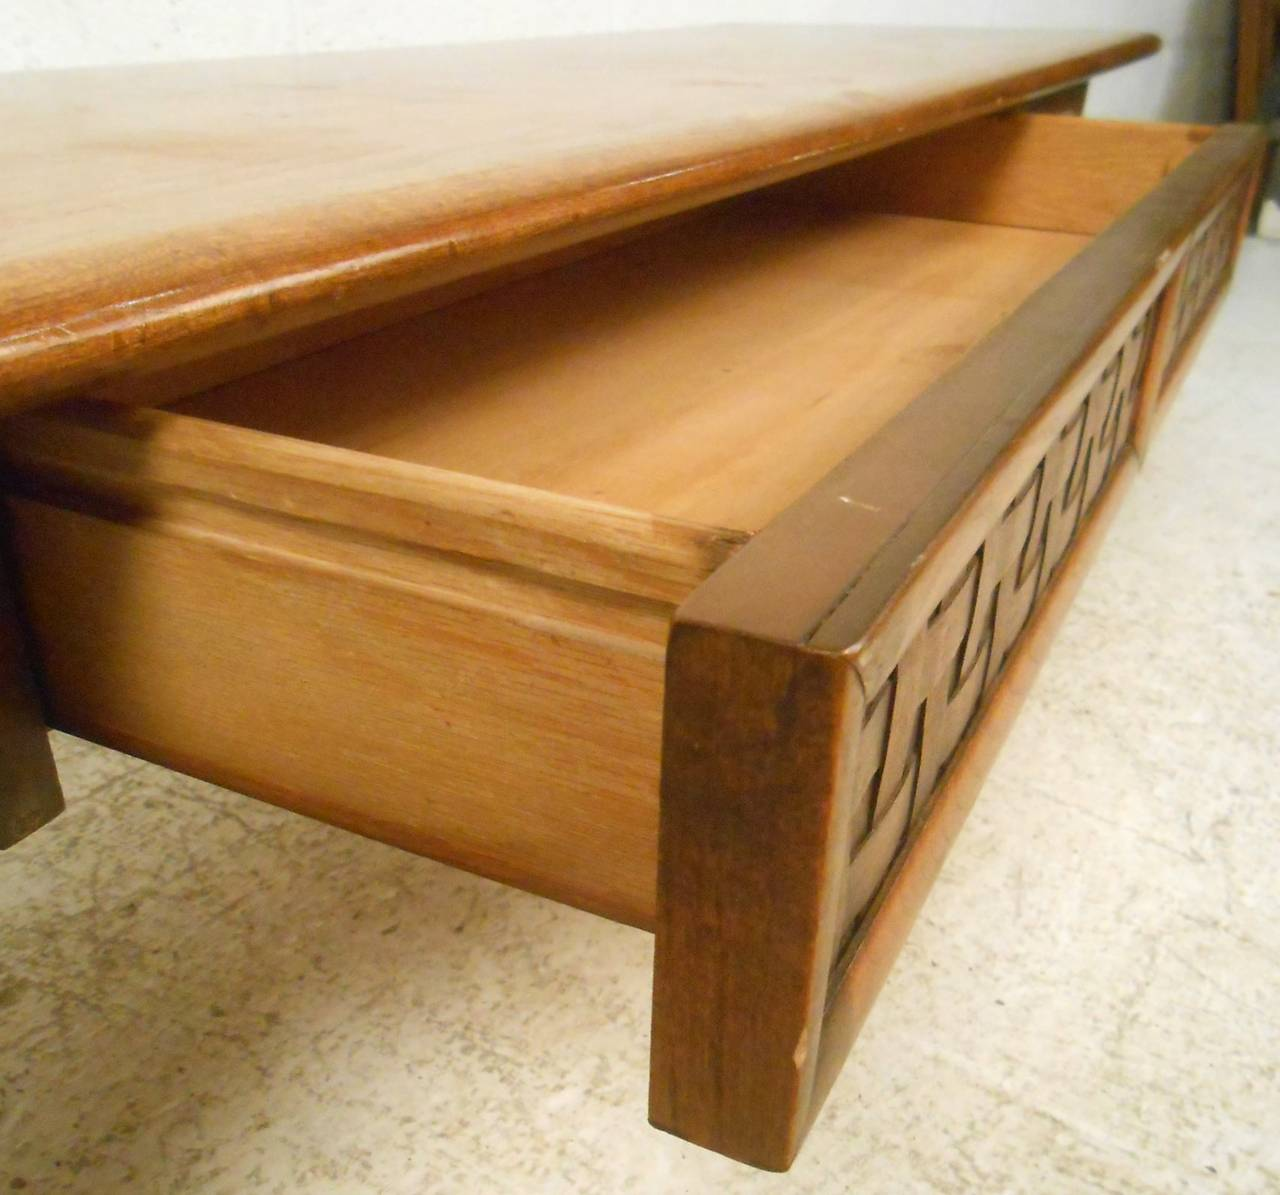 Mid-20th Century Vintage Walnut Coffee Table by Lane For Sale